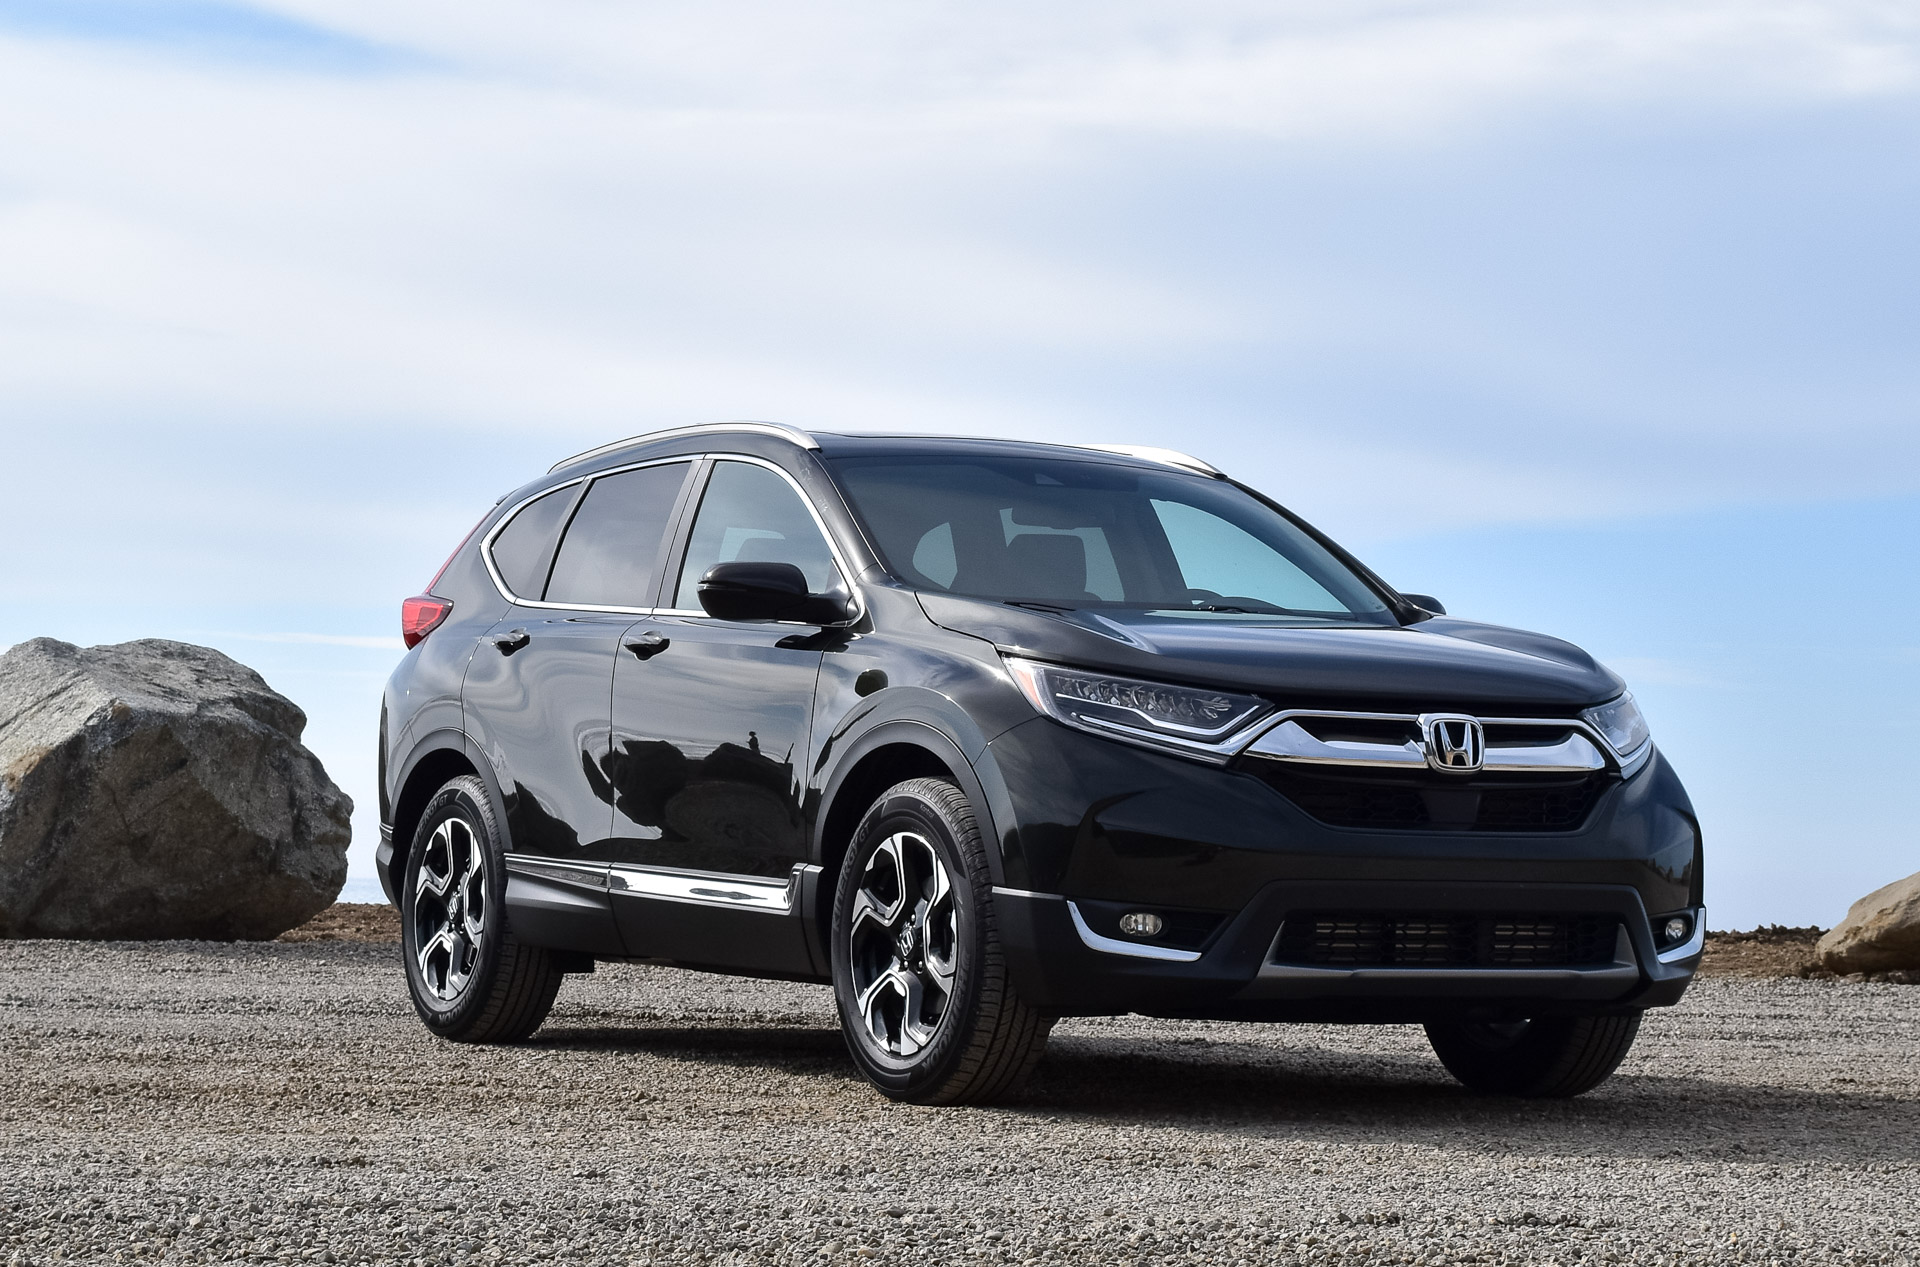 First Drive Review: 2017 Honda CR-V